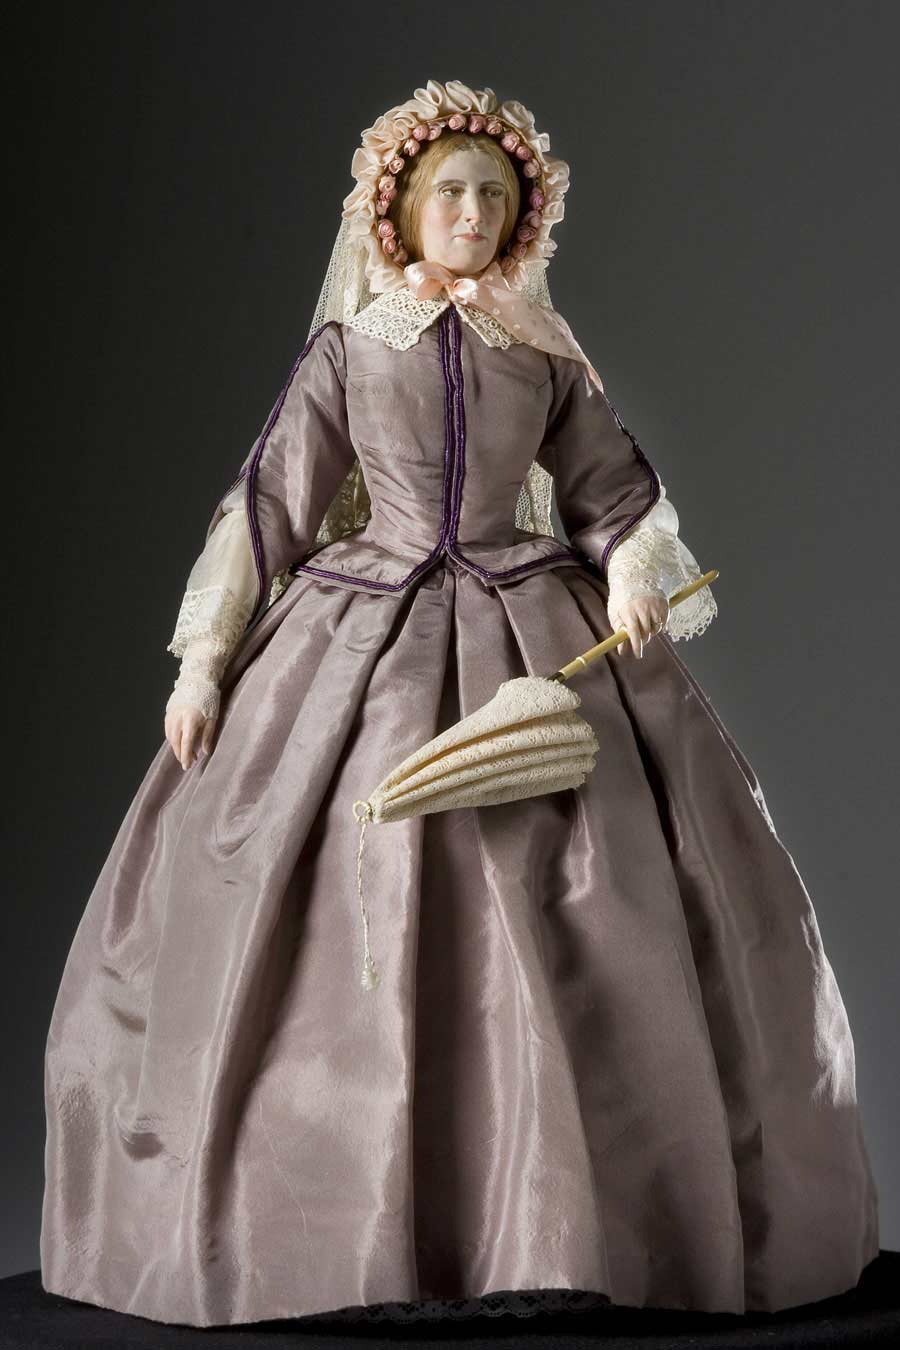 Full length color image of Mary Todd Lincoln aka.